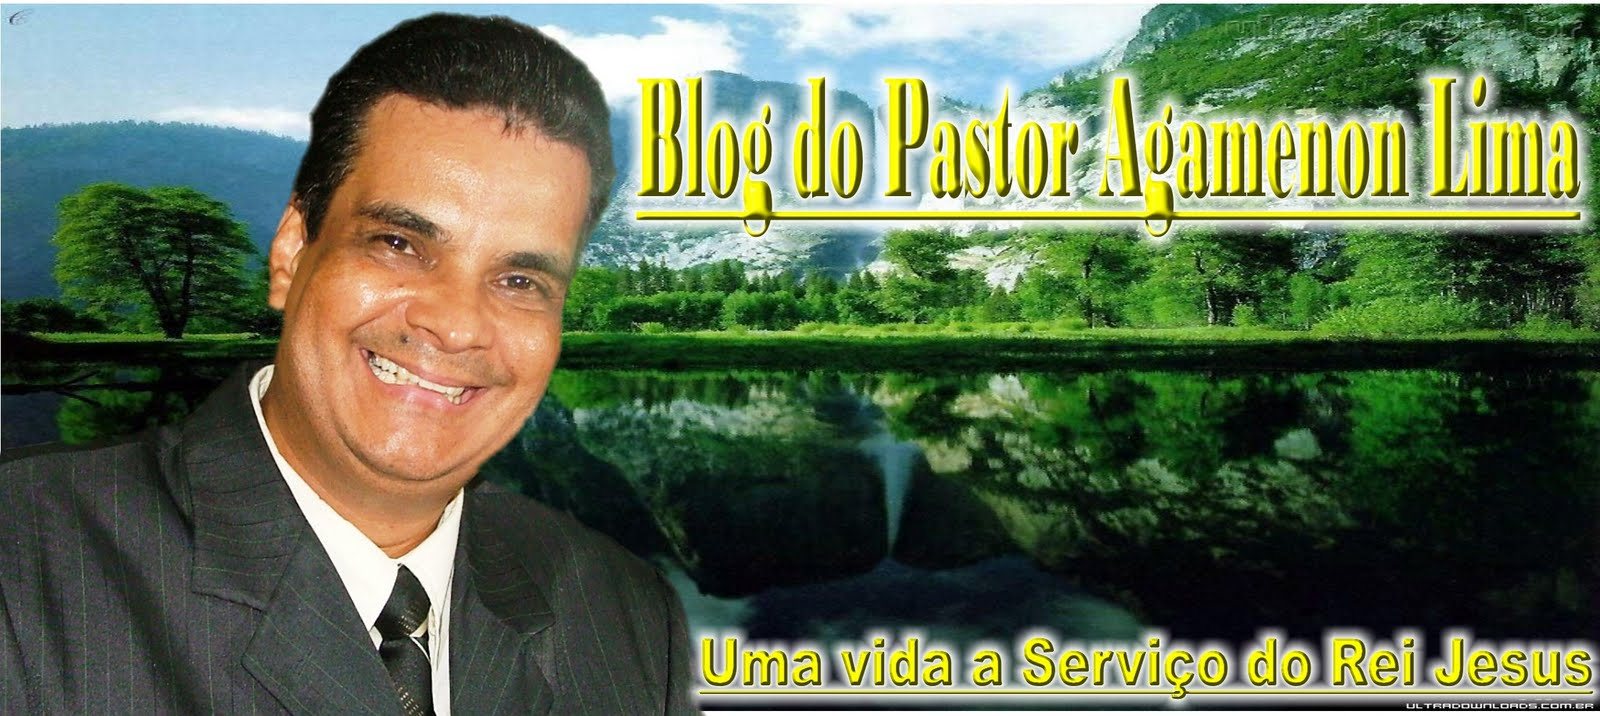 Blog do Pastor Agamenon Lima